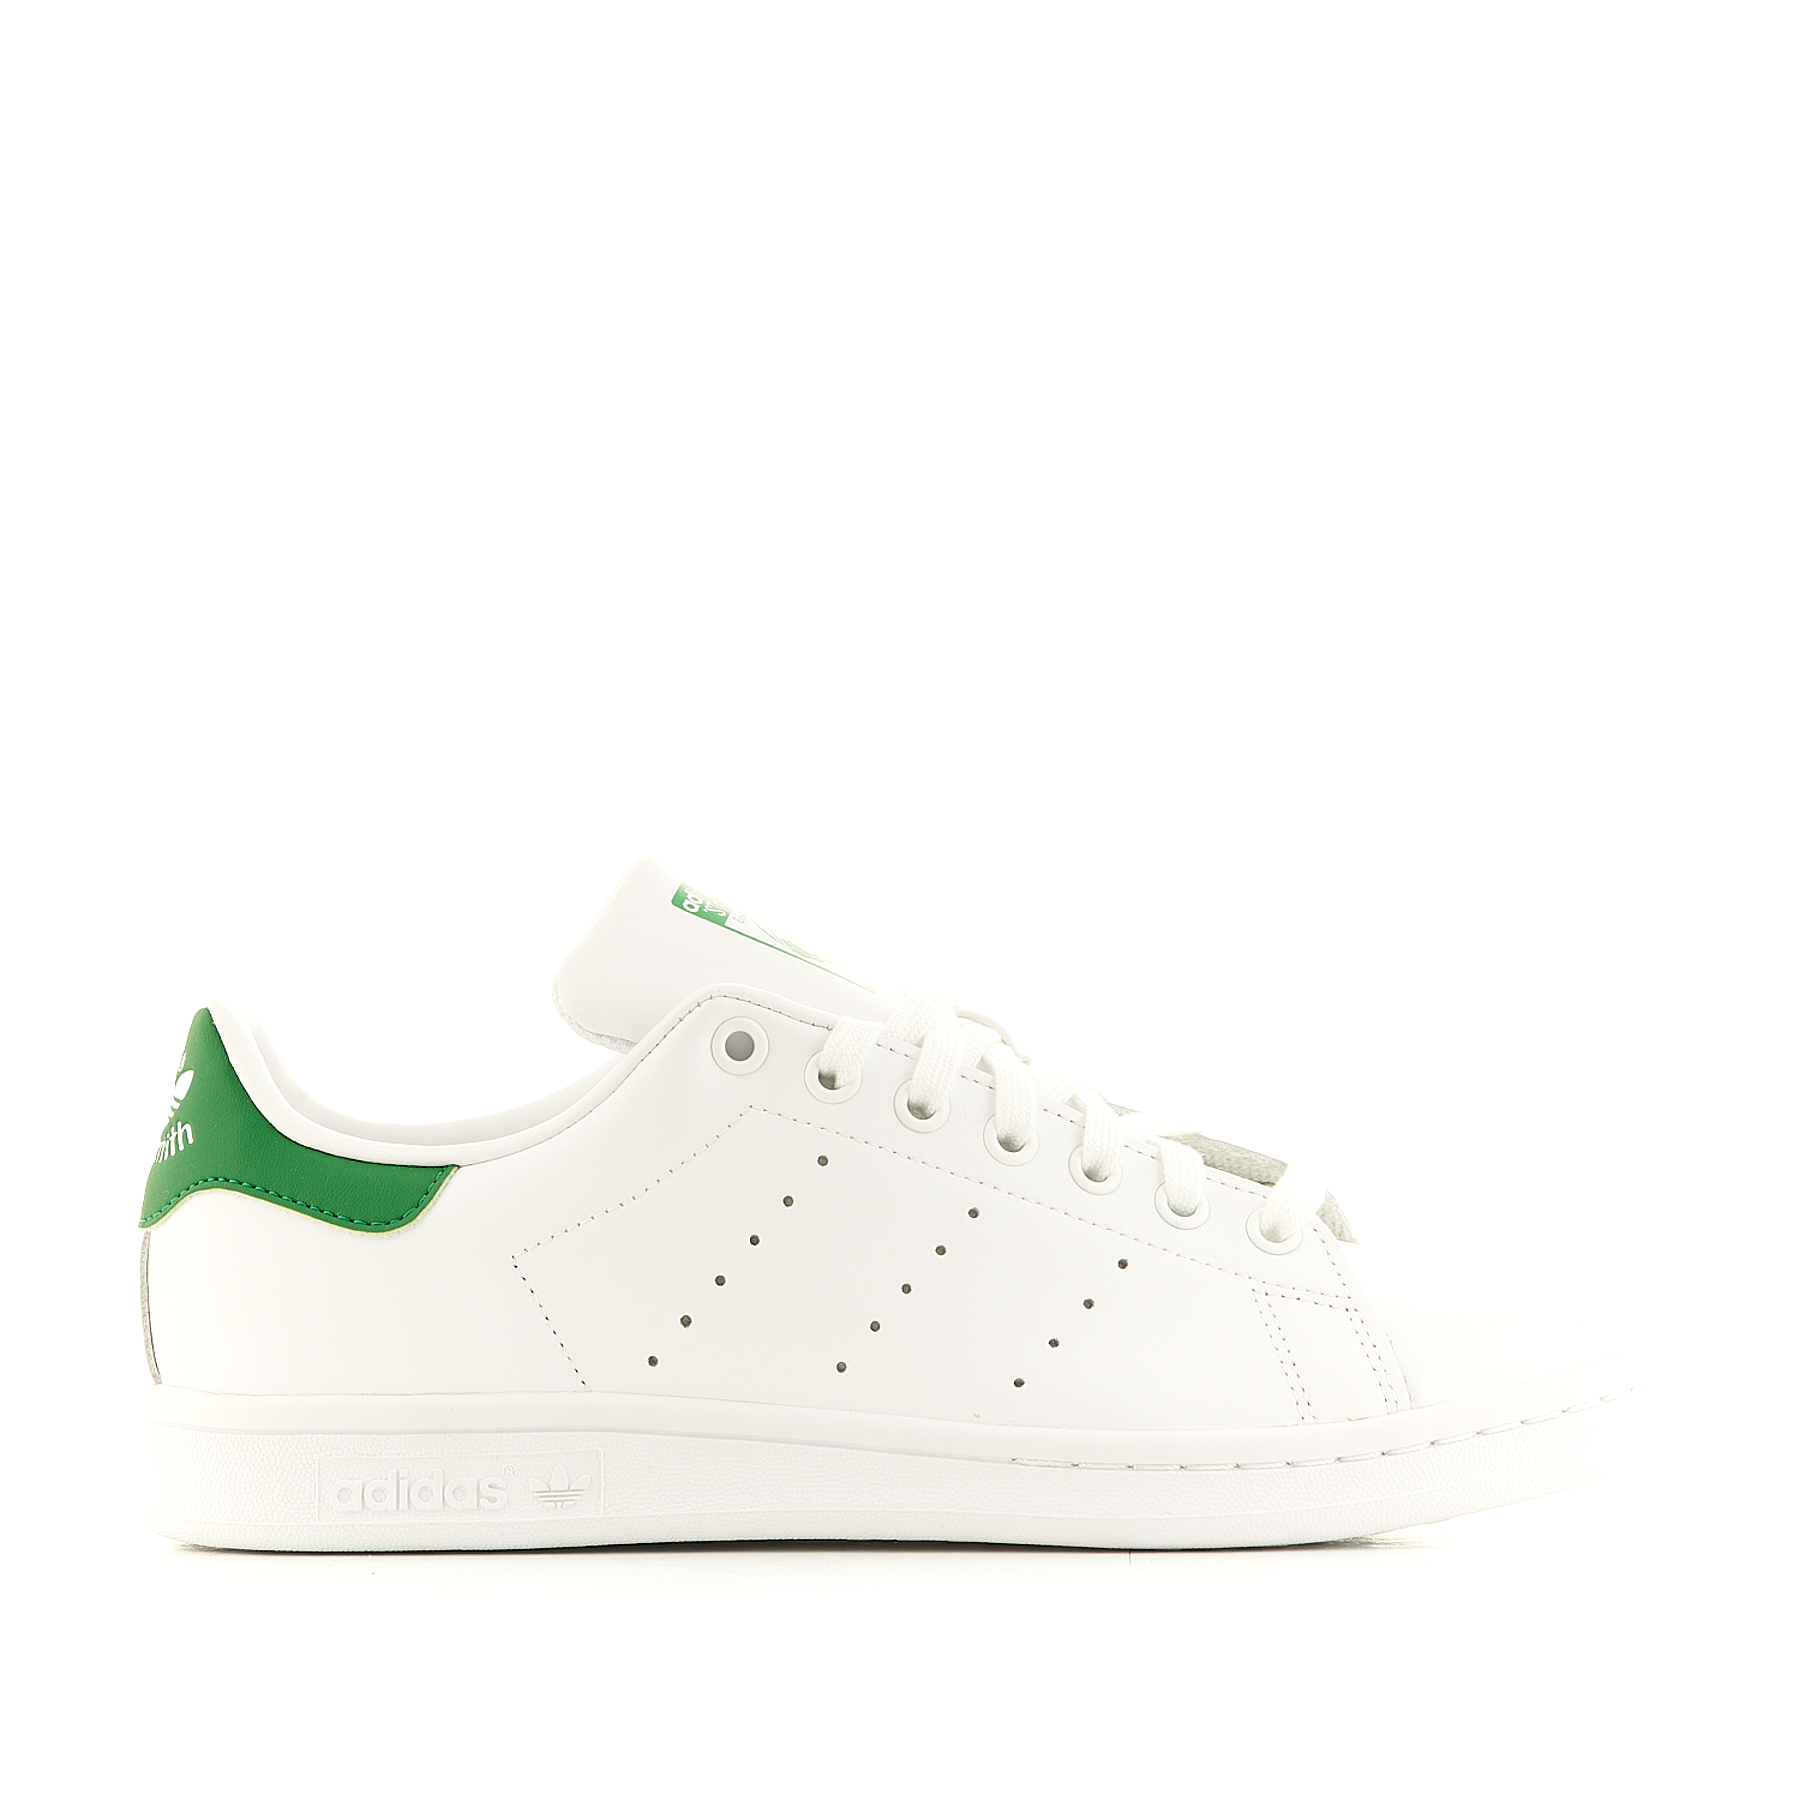 STAN SMITH CLASSIC GREEN